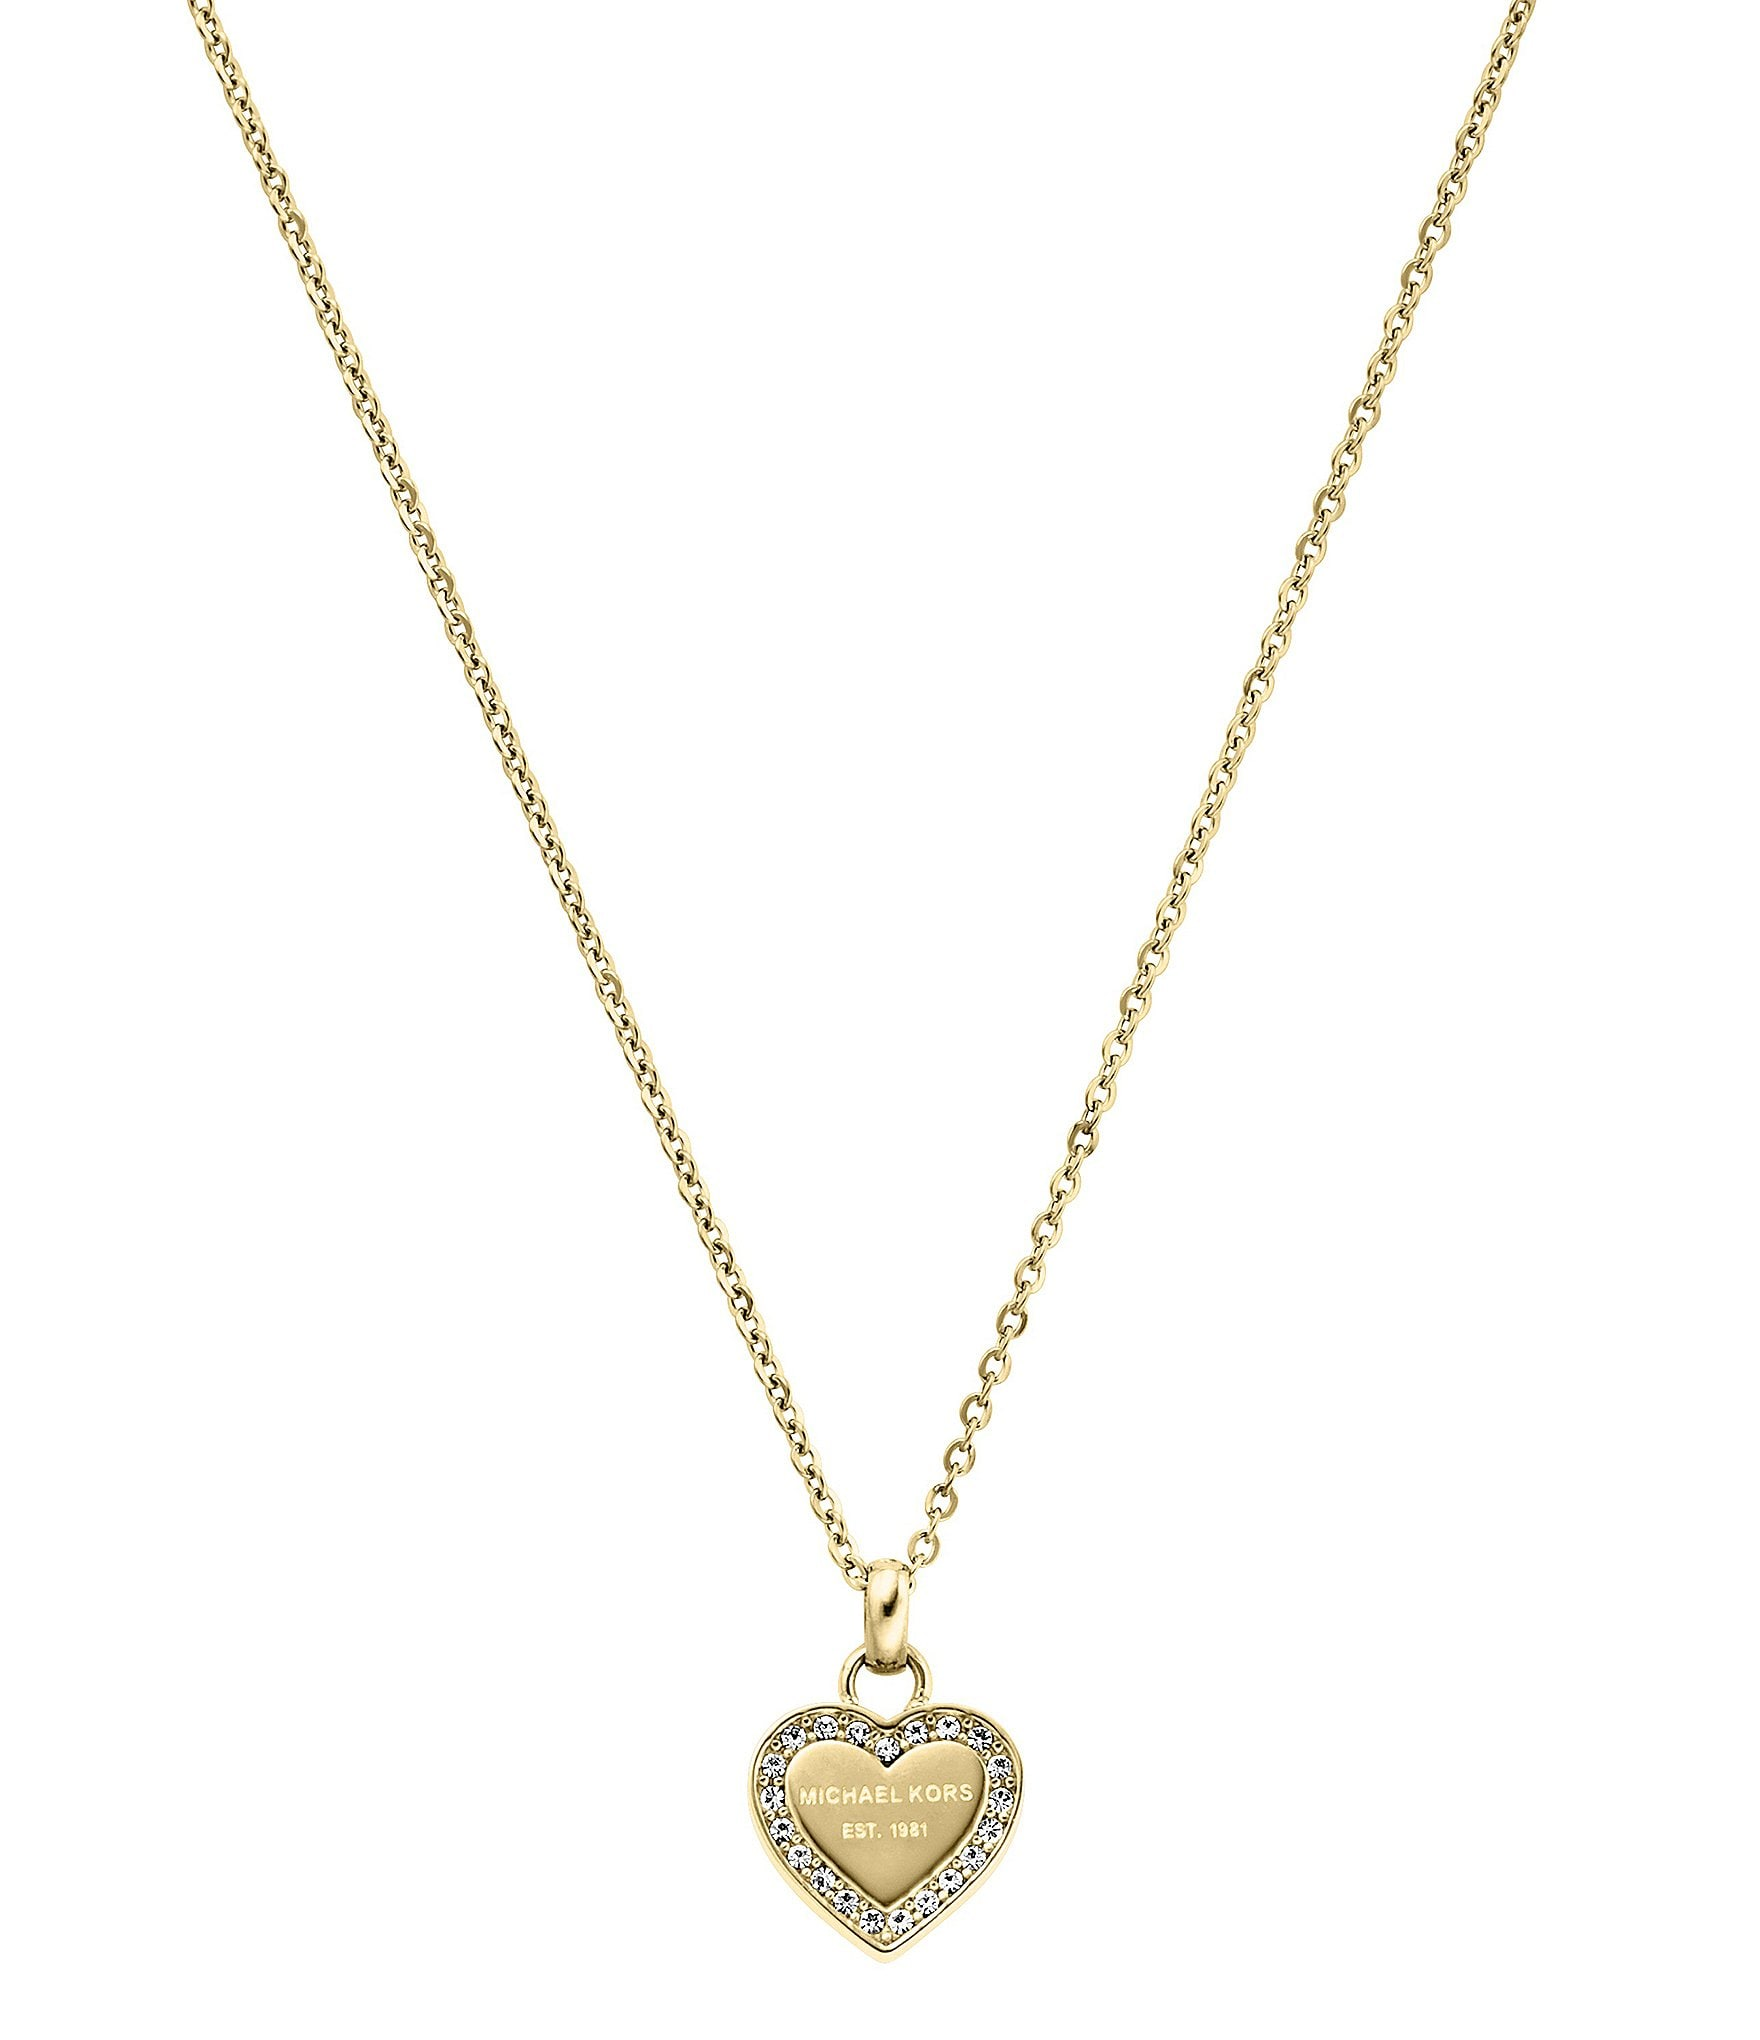 michael kors logo heart stainless steel pendant necklace. Black Bedroom Furniture Sets. Home Design Ideas